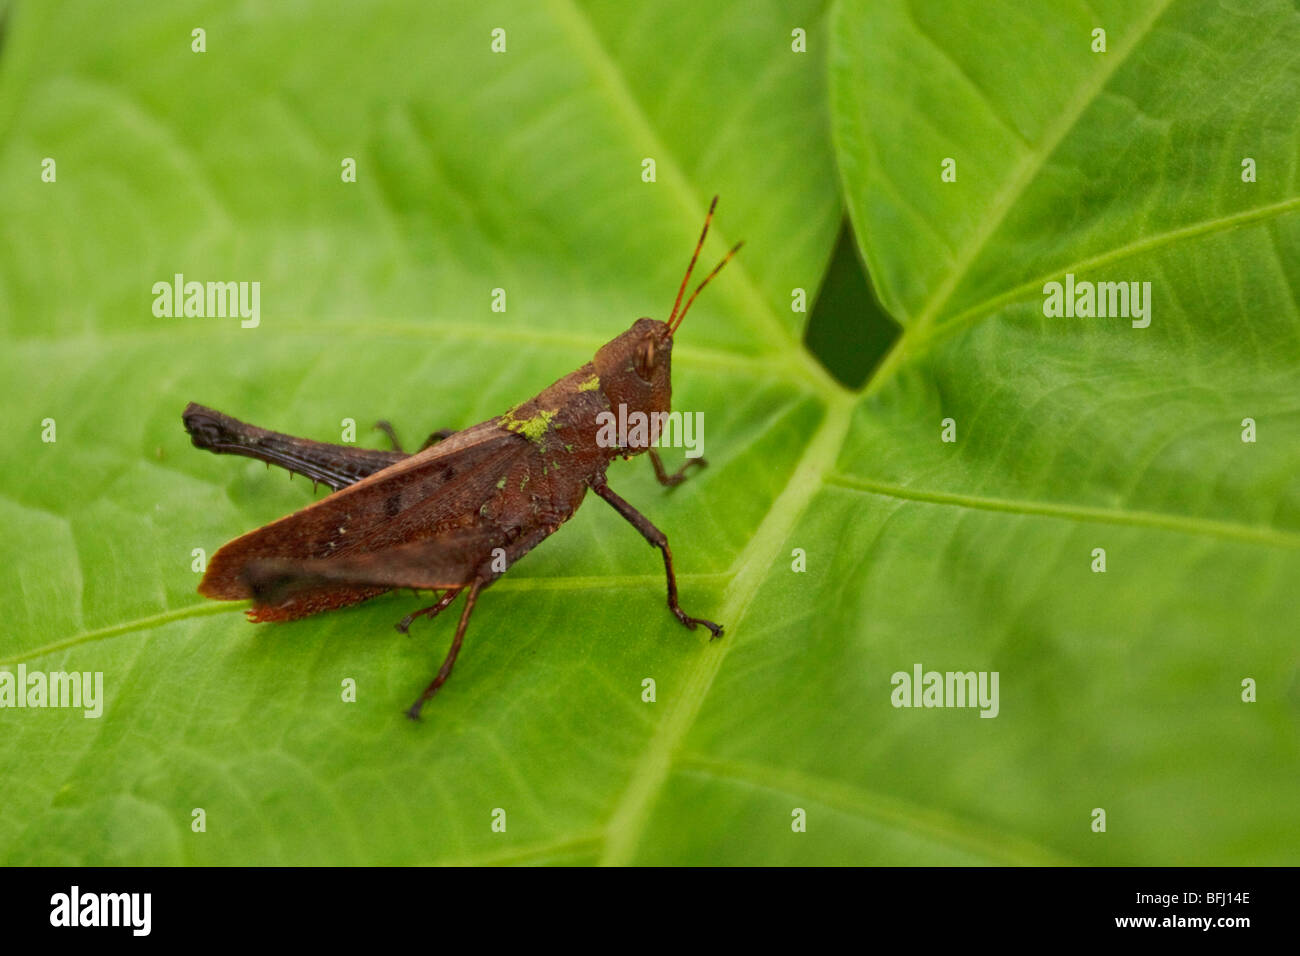 A Greasshopper perched on a leaf in the Milpe reserve in northwest Ecuador. - Stock Image